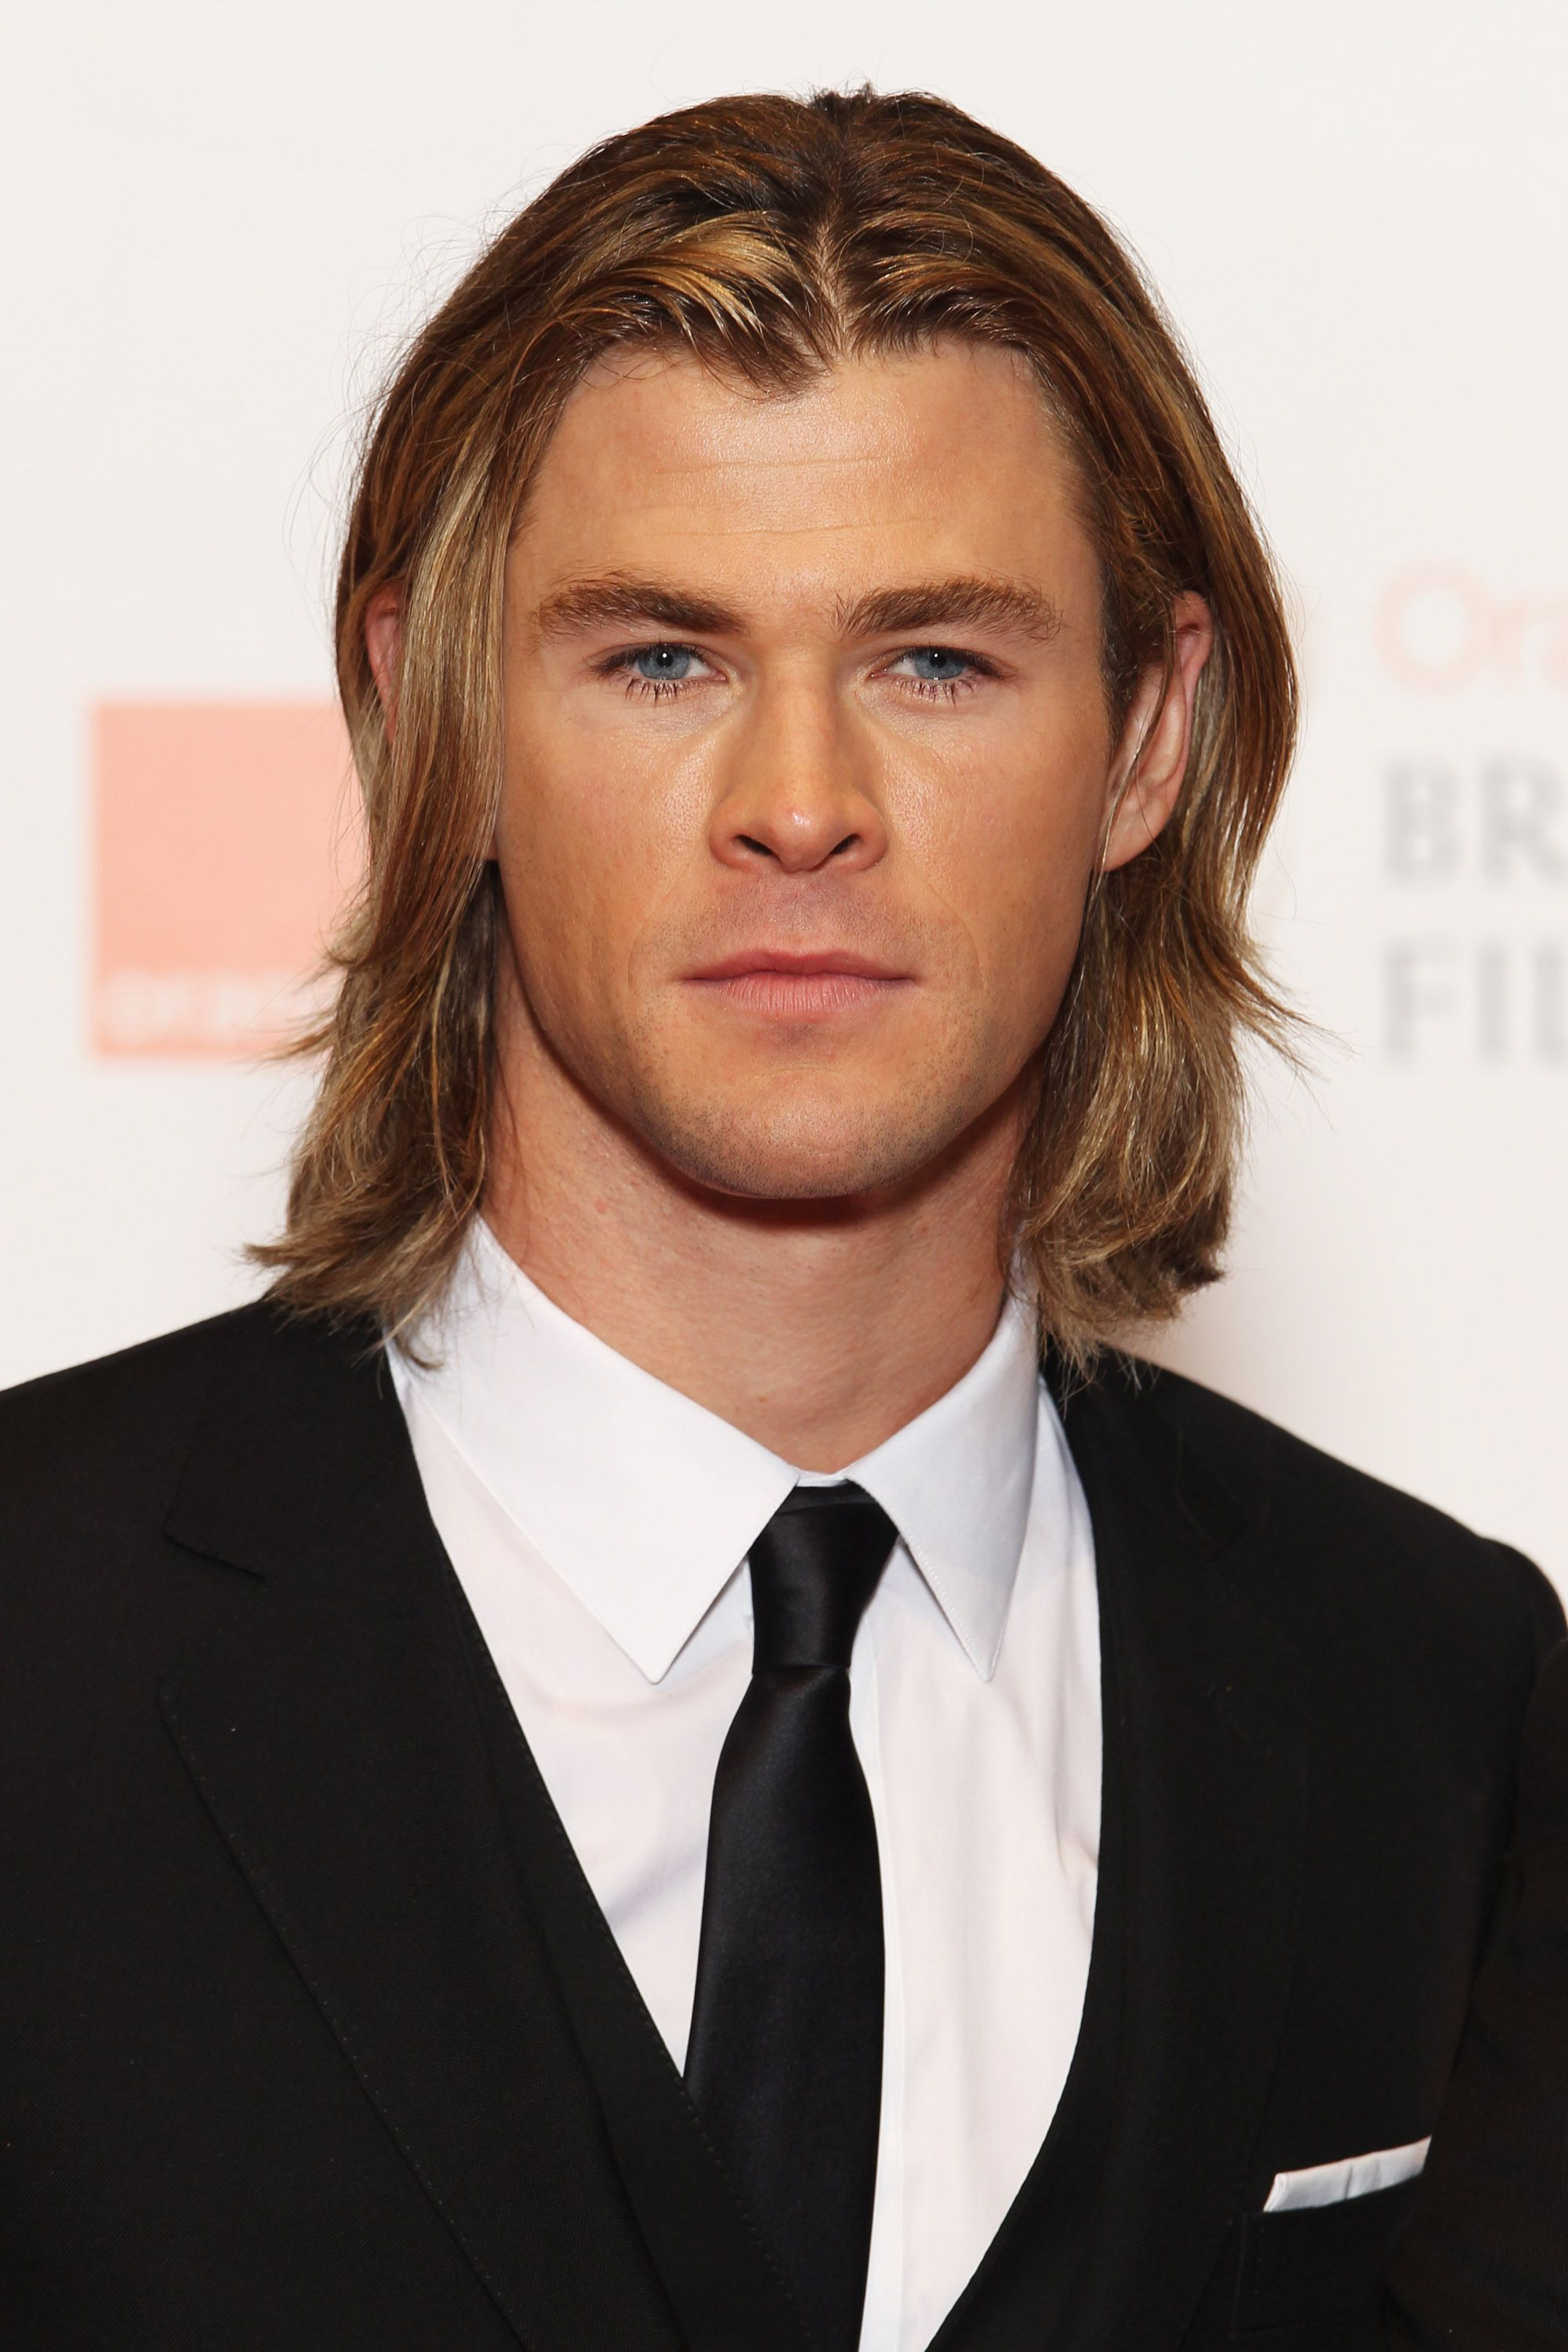 le beau chris hemsworth